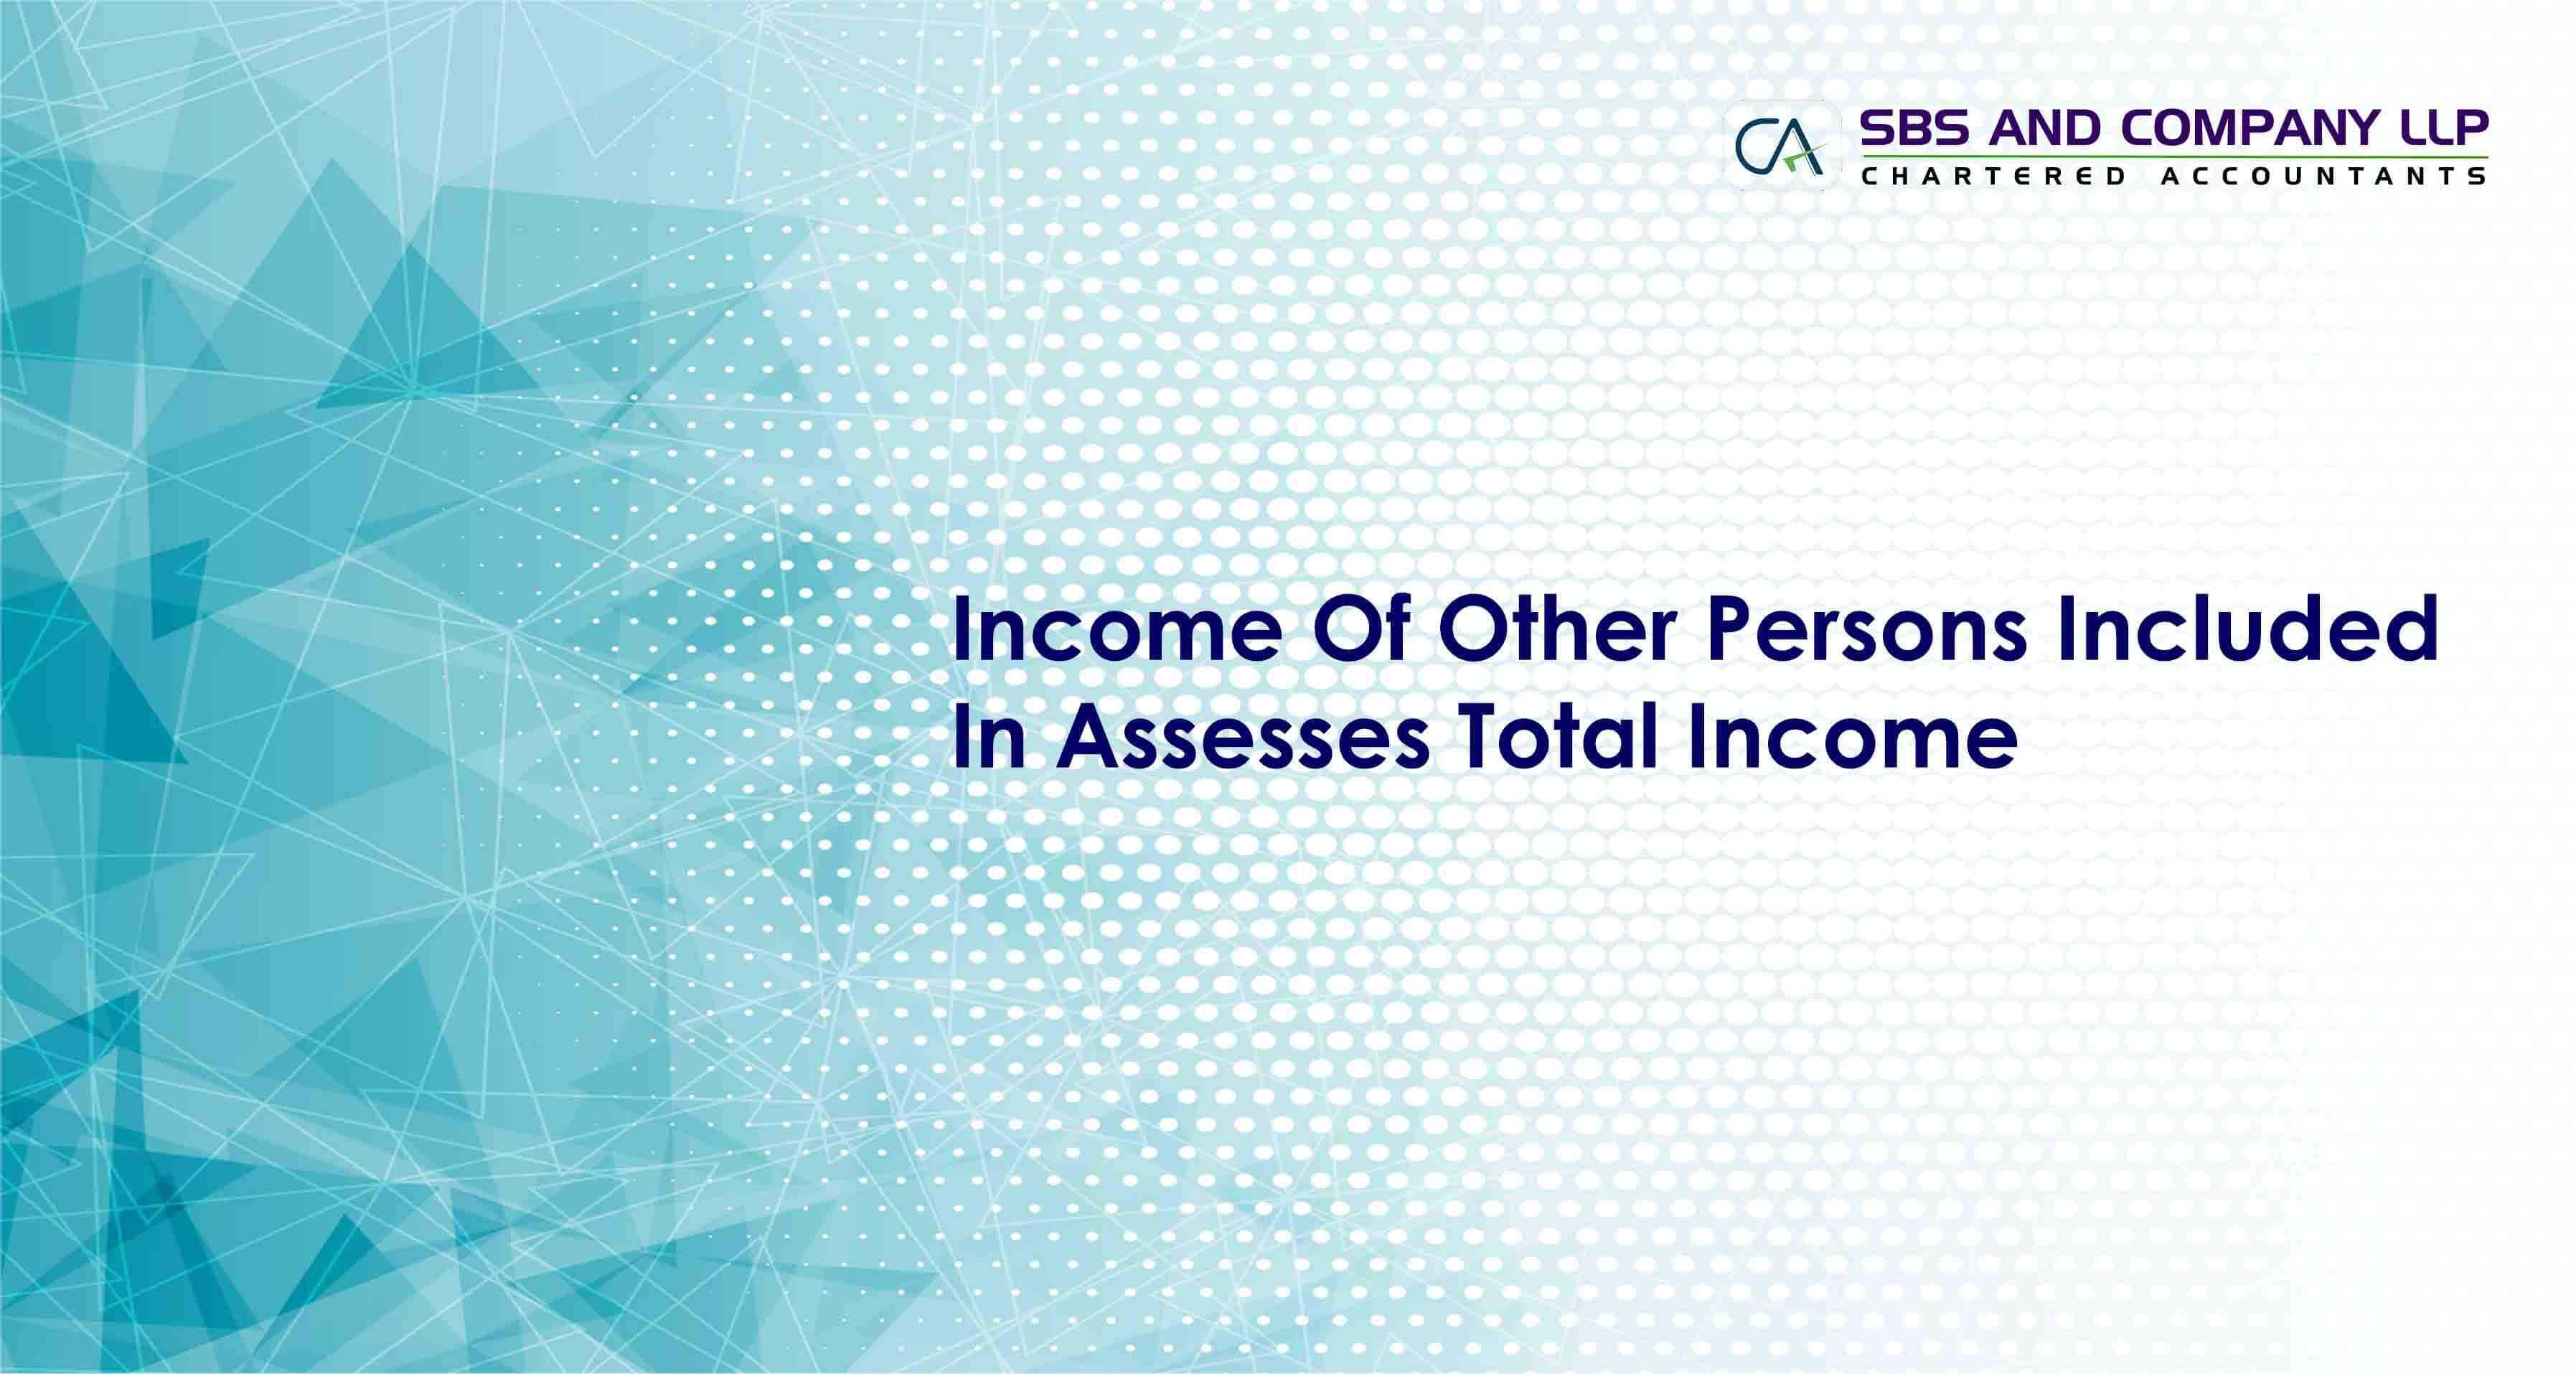 Income Of Other Persons Included In Assesses Total Income